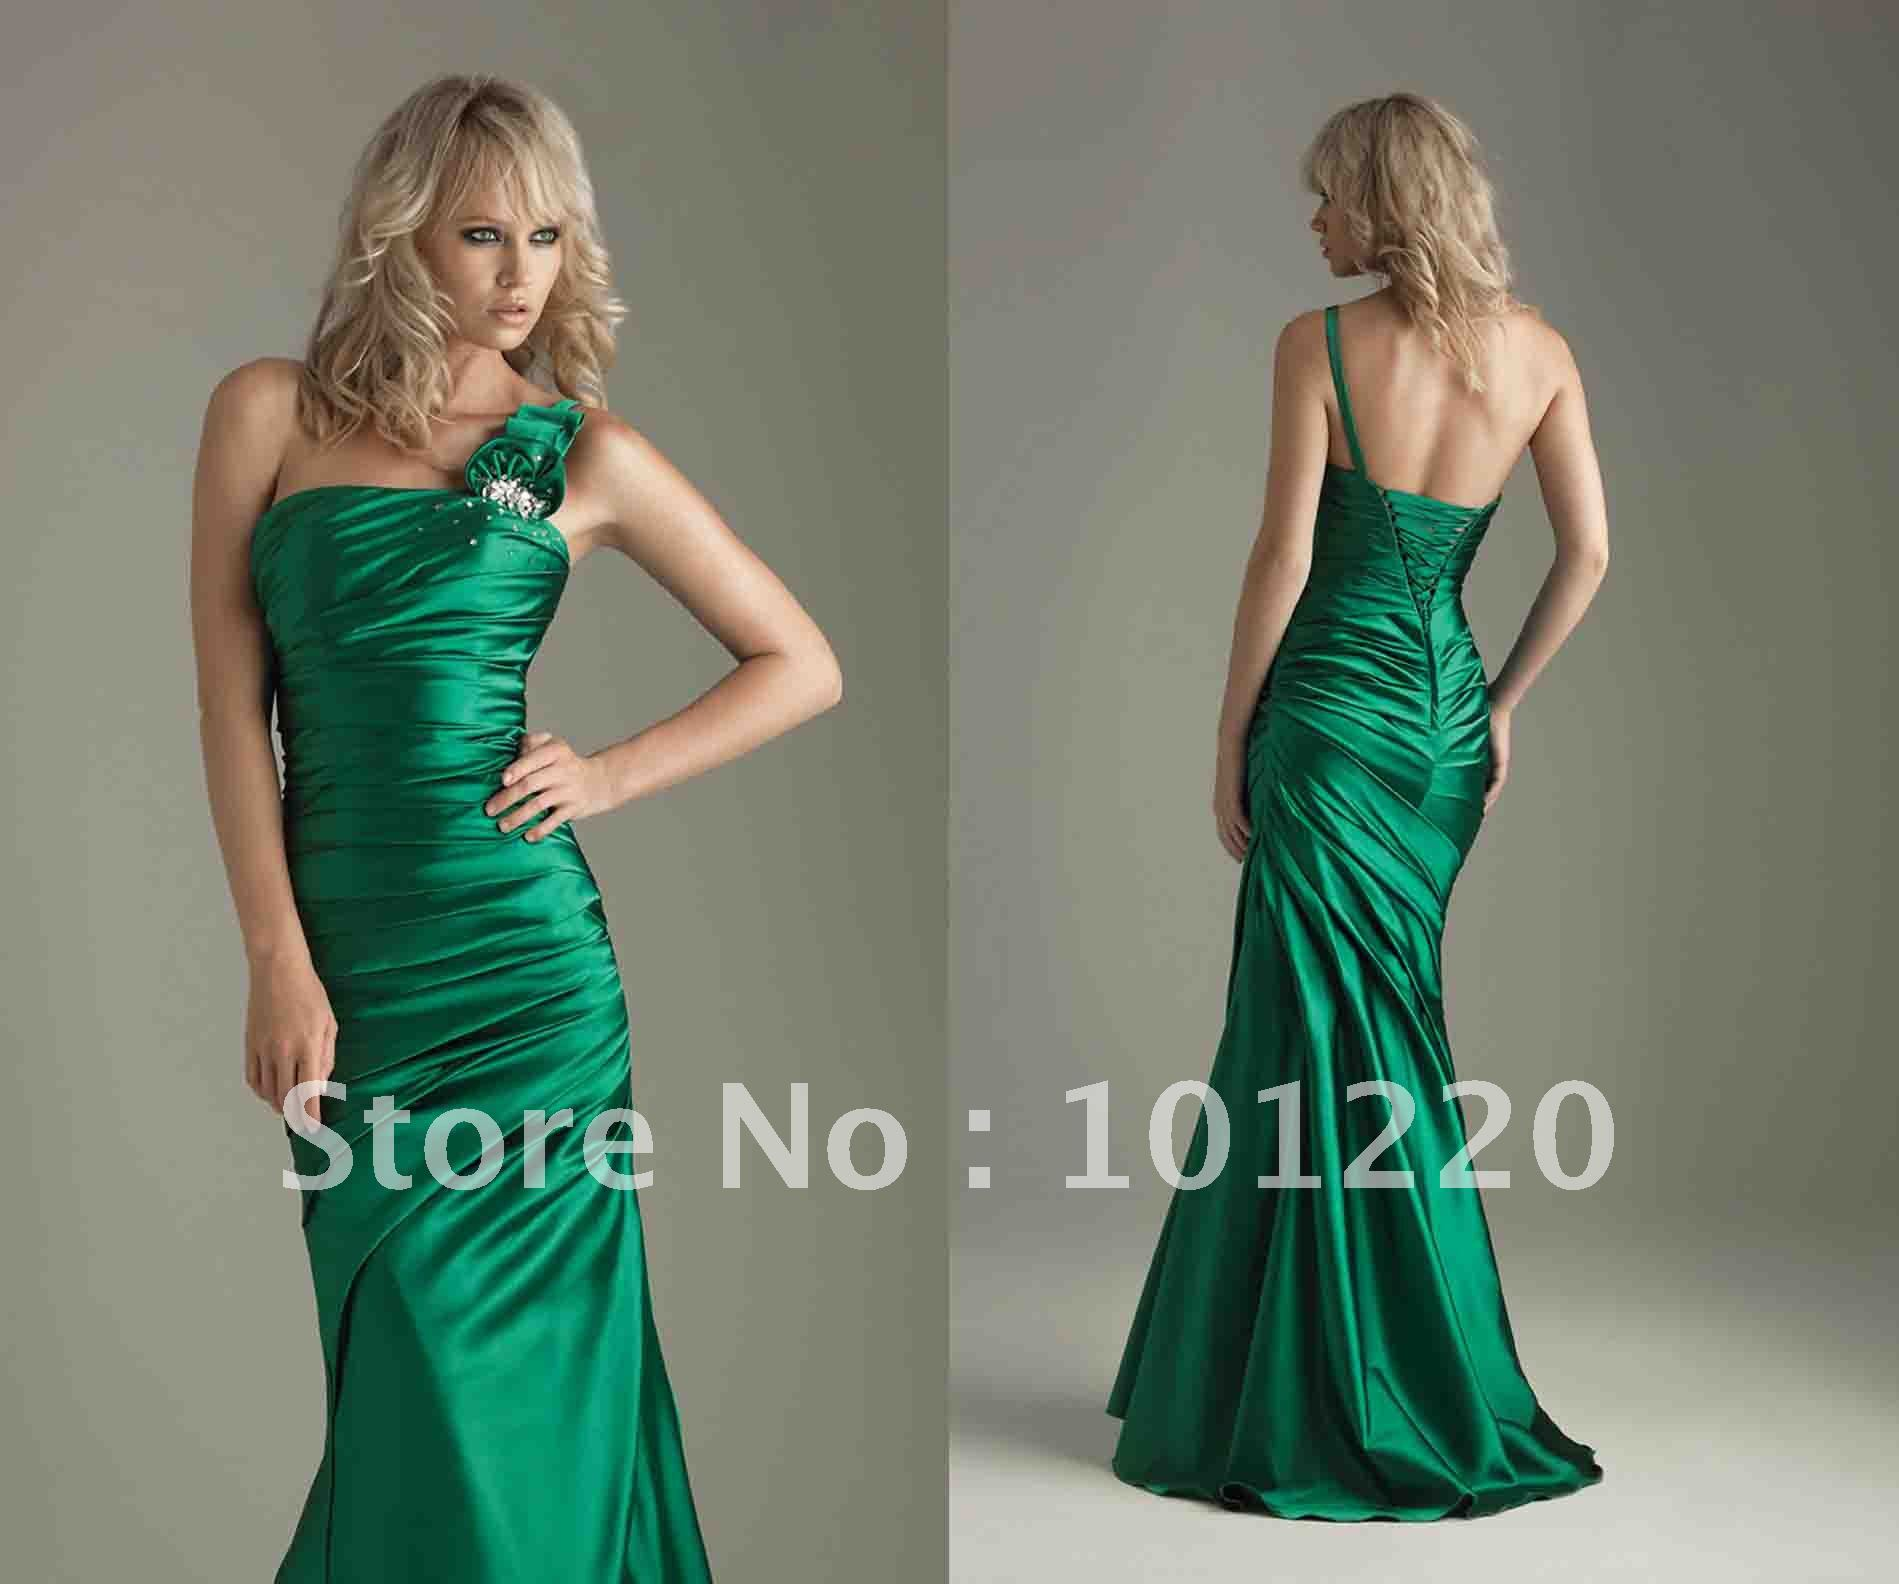 Discount Free Shipping Cwds078 One Shoulder With: Free Shipping Custom Made Emerald Green One Shoulder Prom